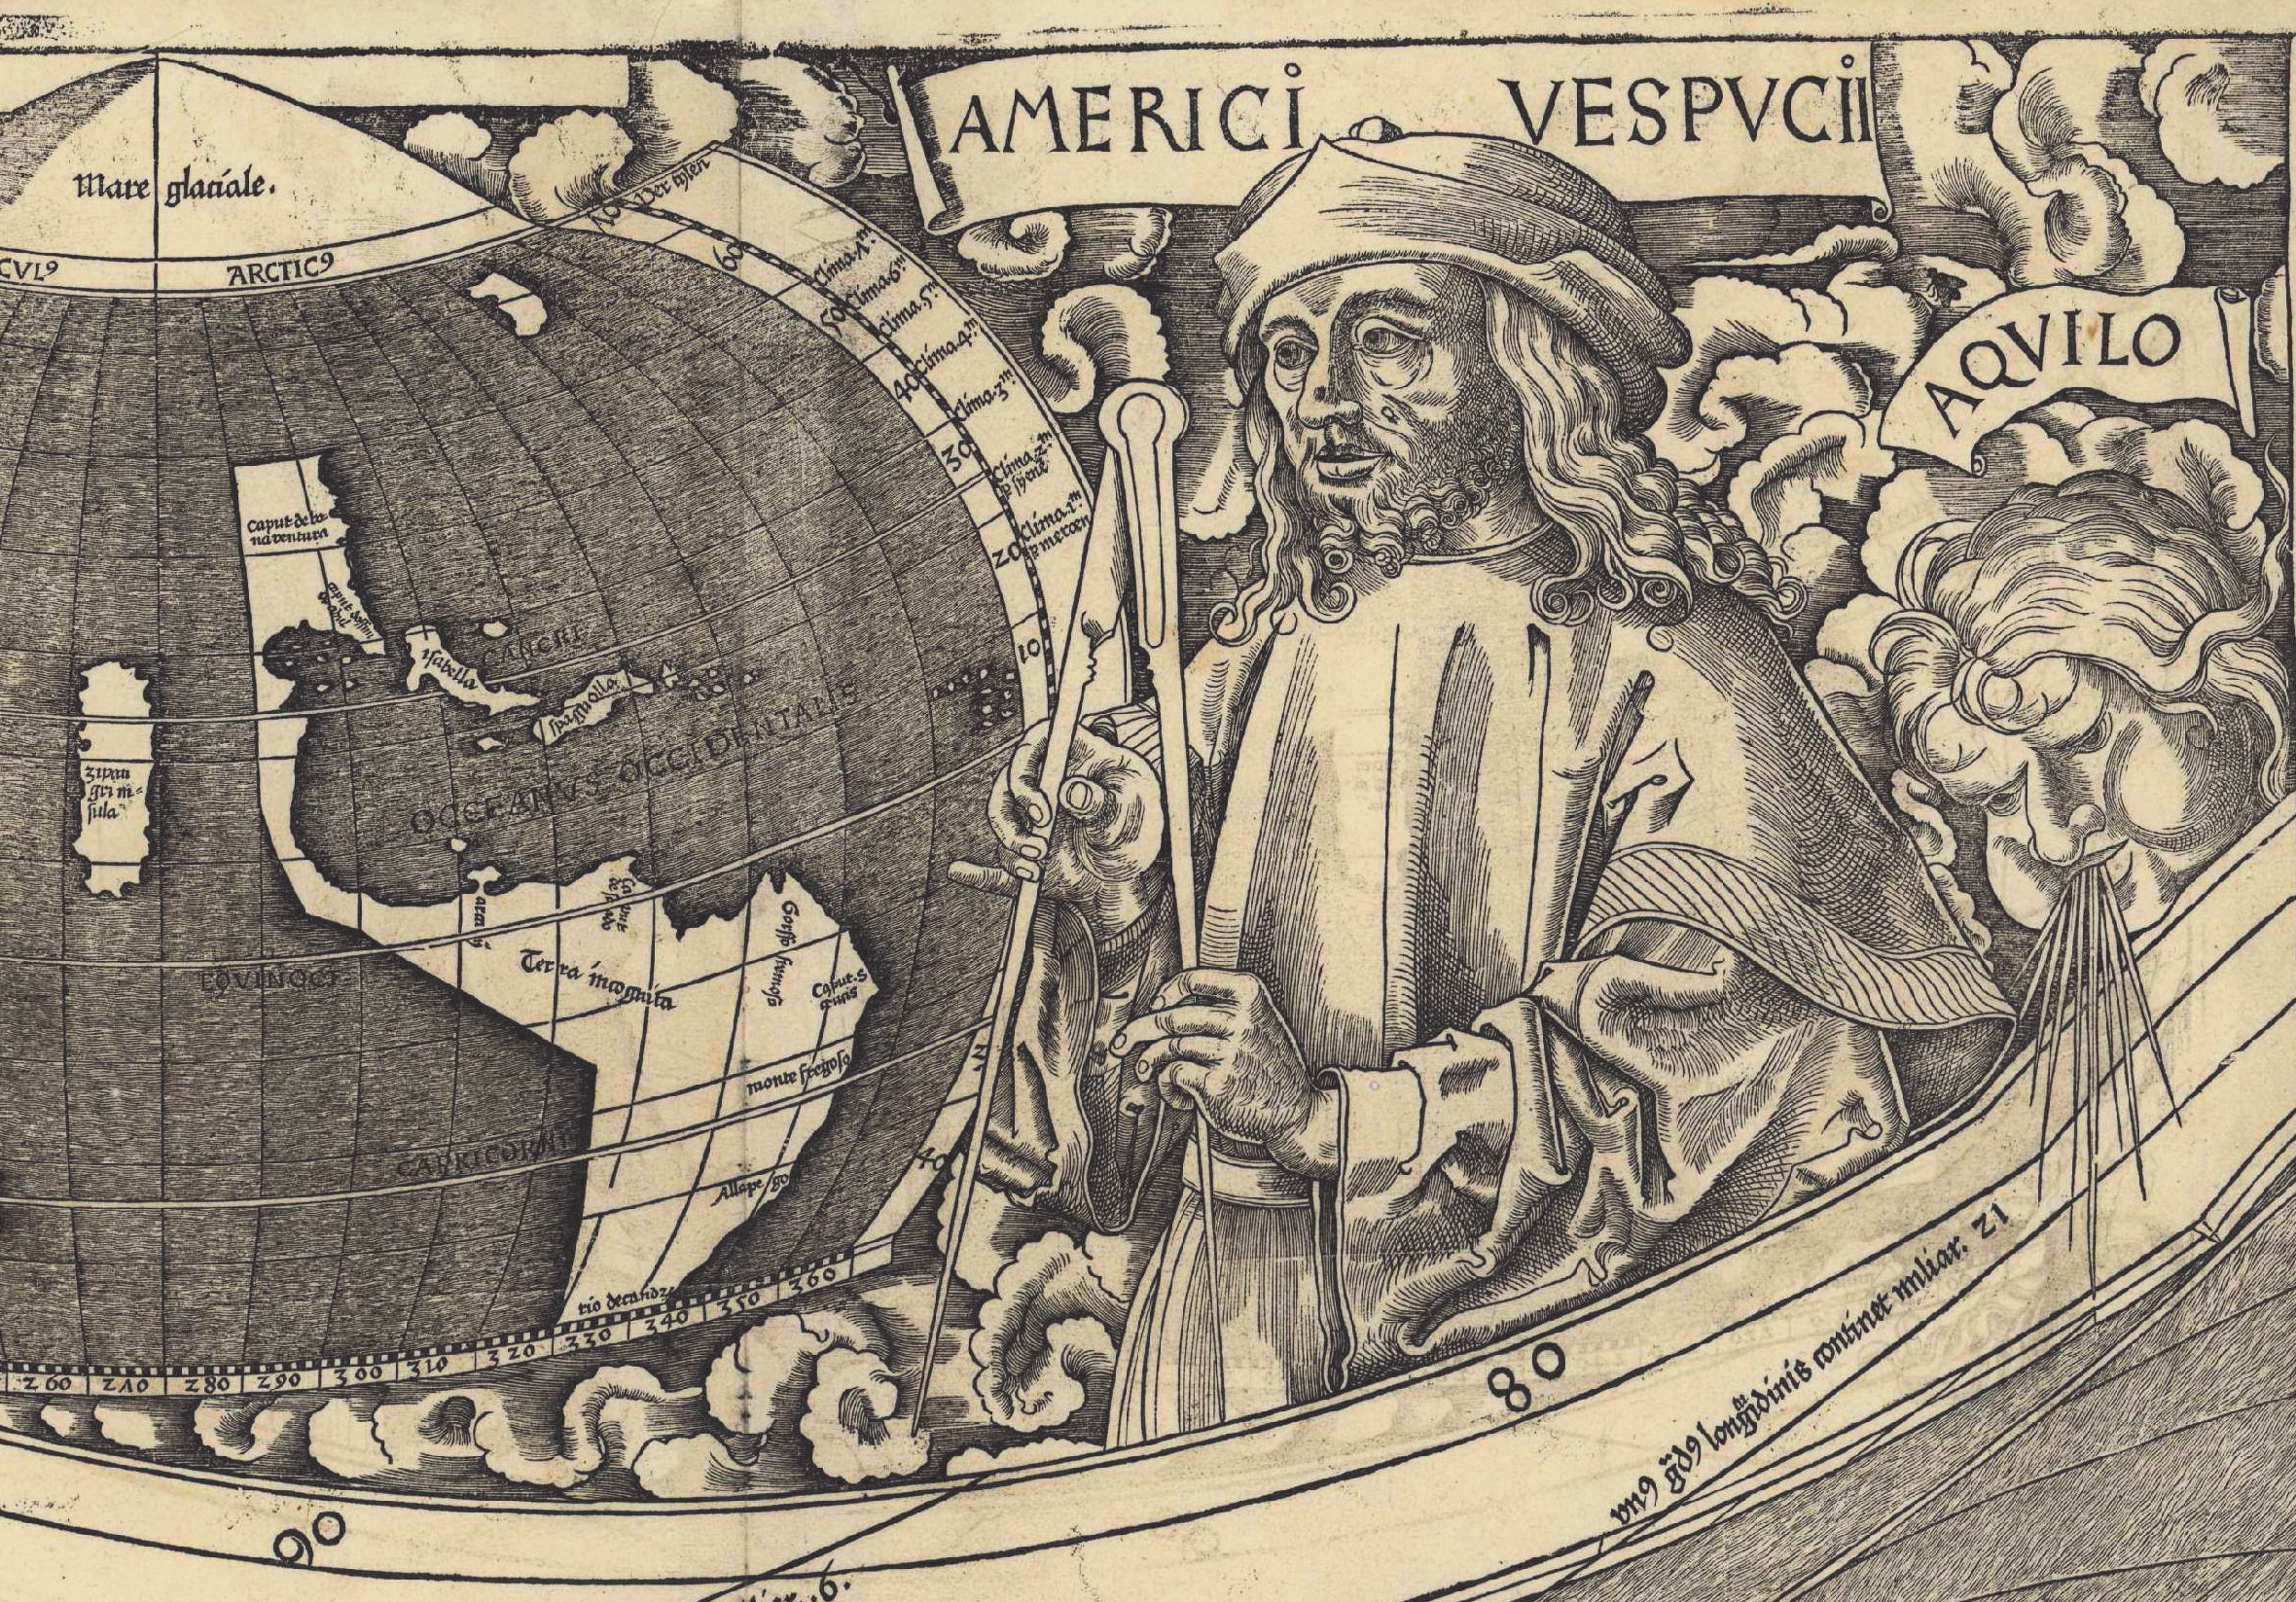 Detail from a drawn map, including a portion of the globe and a person.